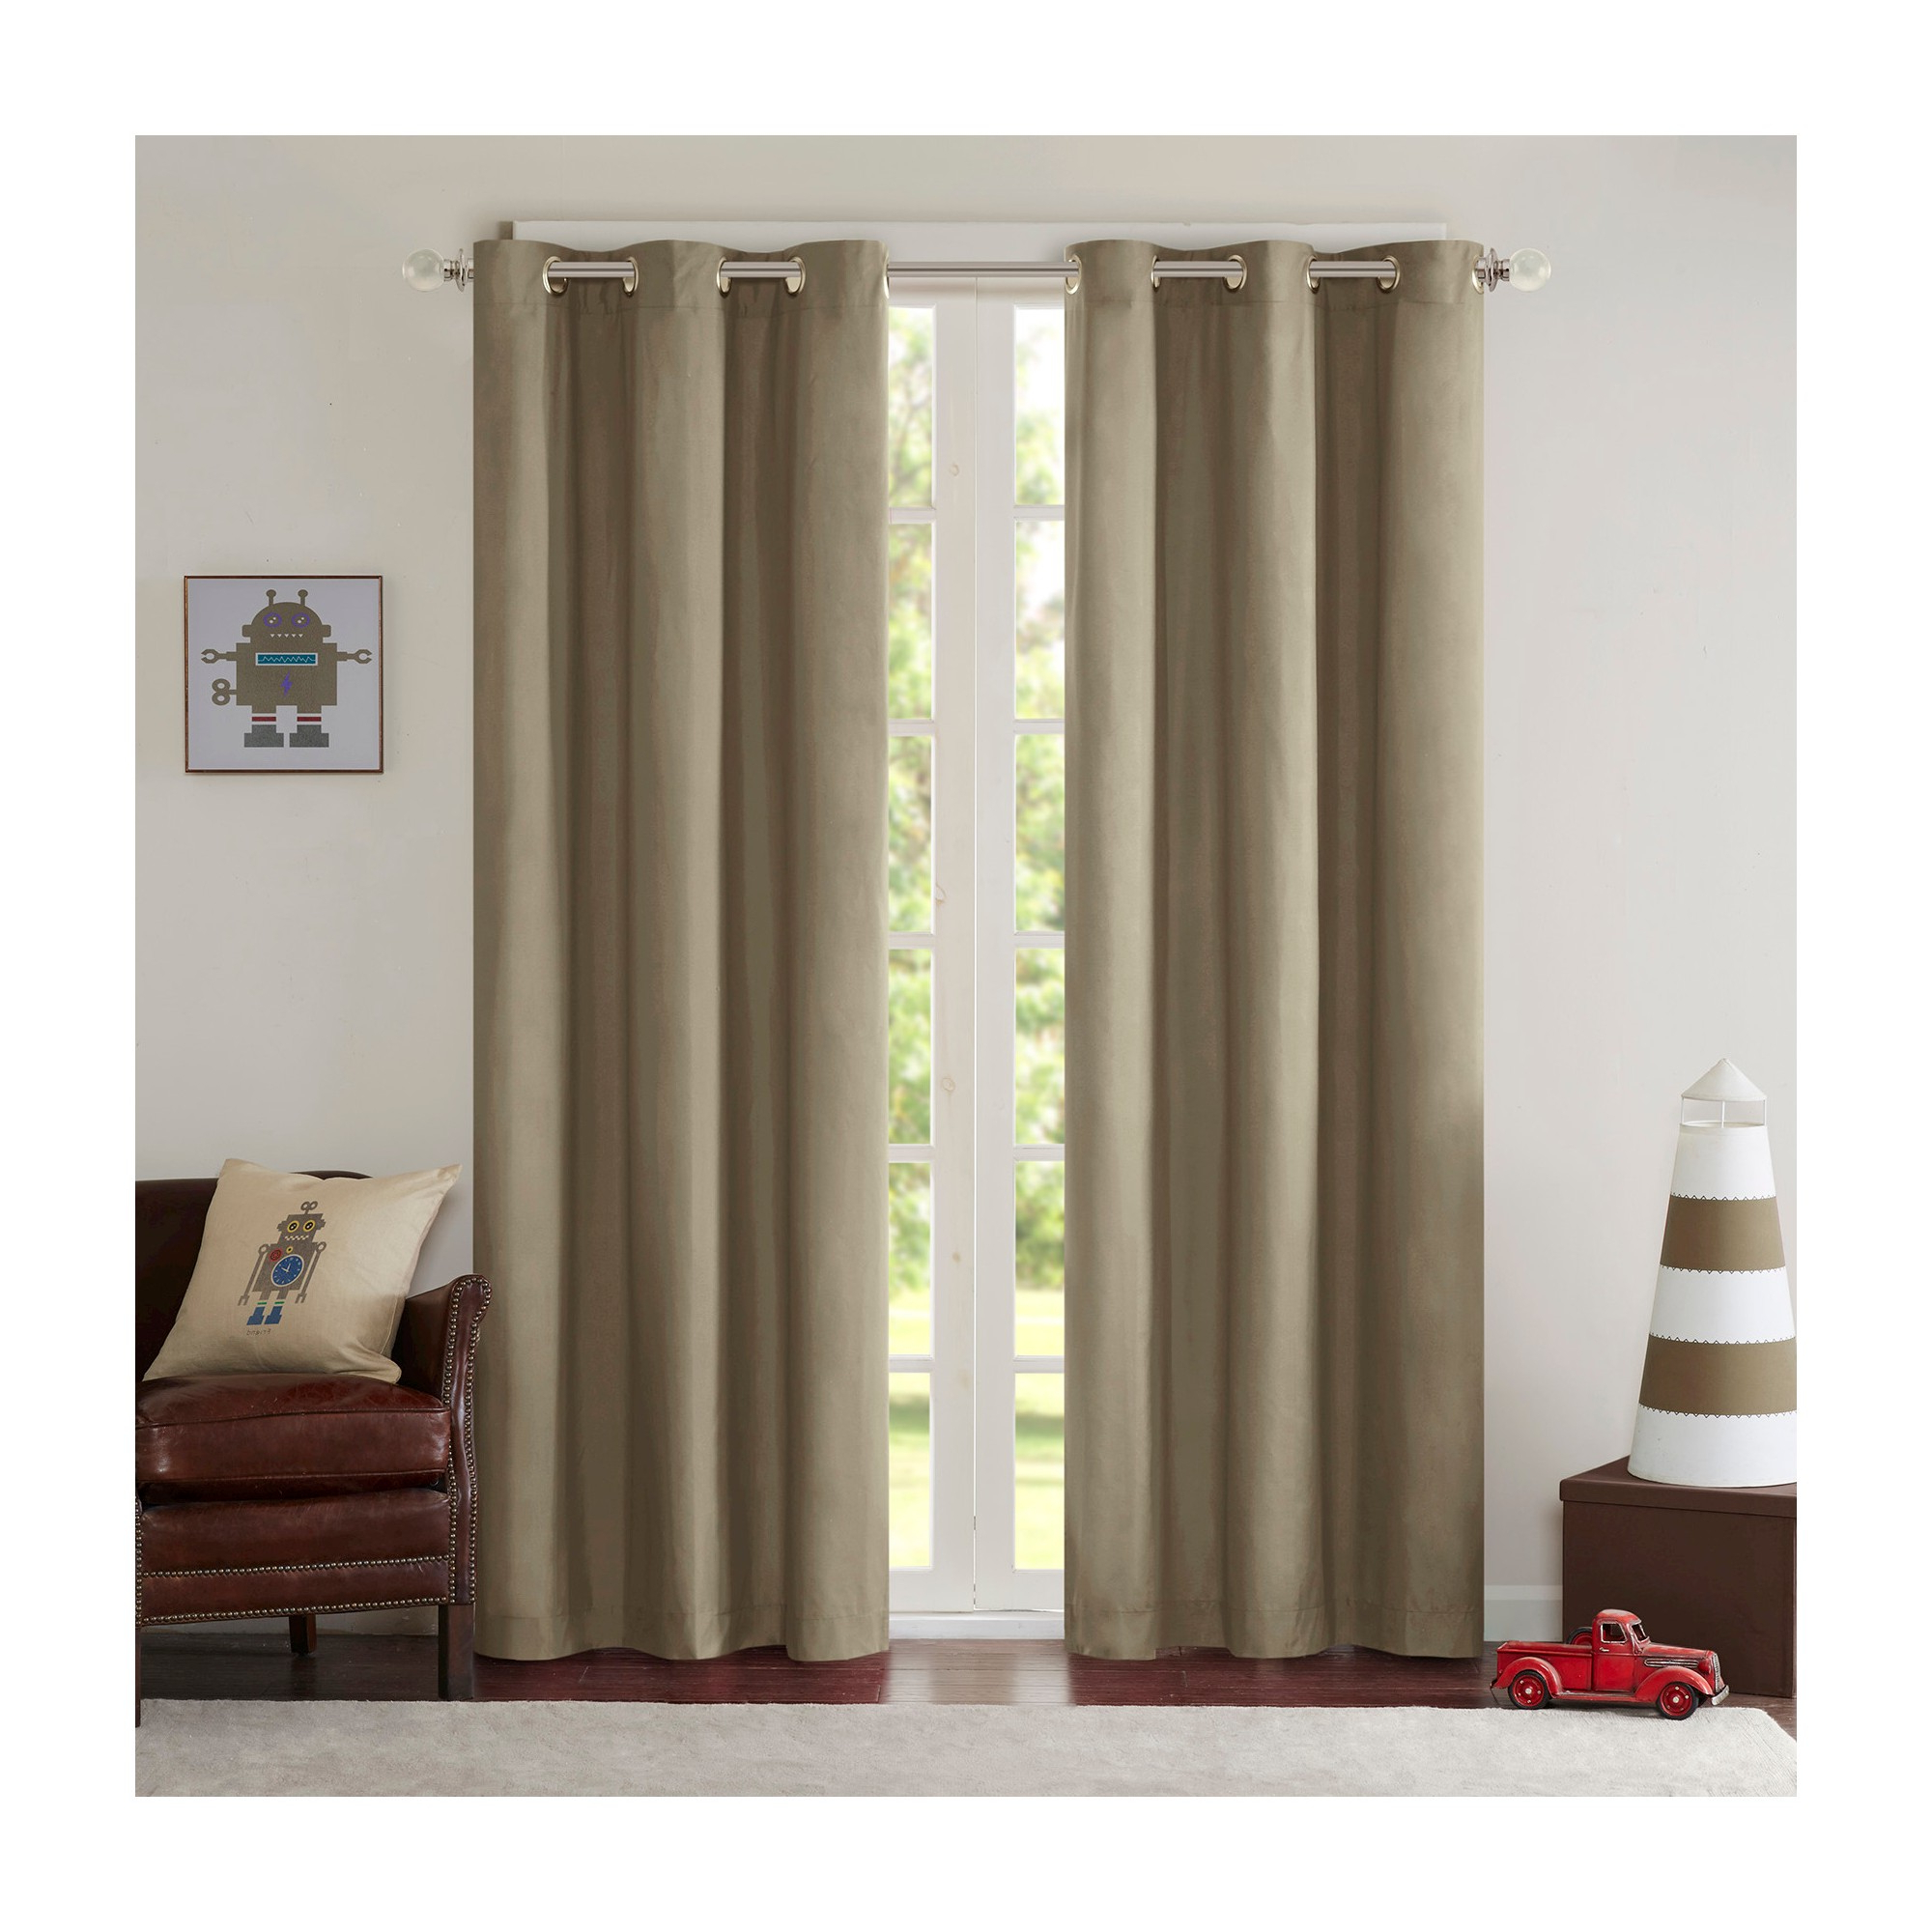 Edson Solid Grommet Top Curtain Panel Pair Khaki (42x63 In Well Liked Solid Grommet Top Curtain Panel Pairs (View 12 of 20)